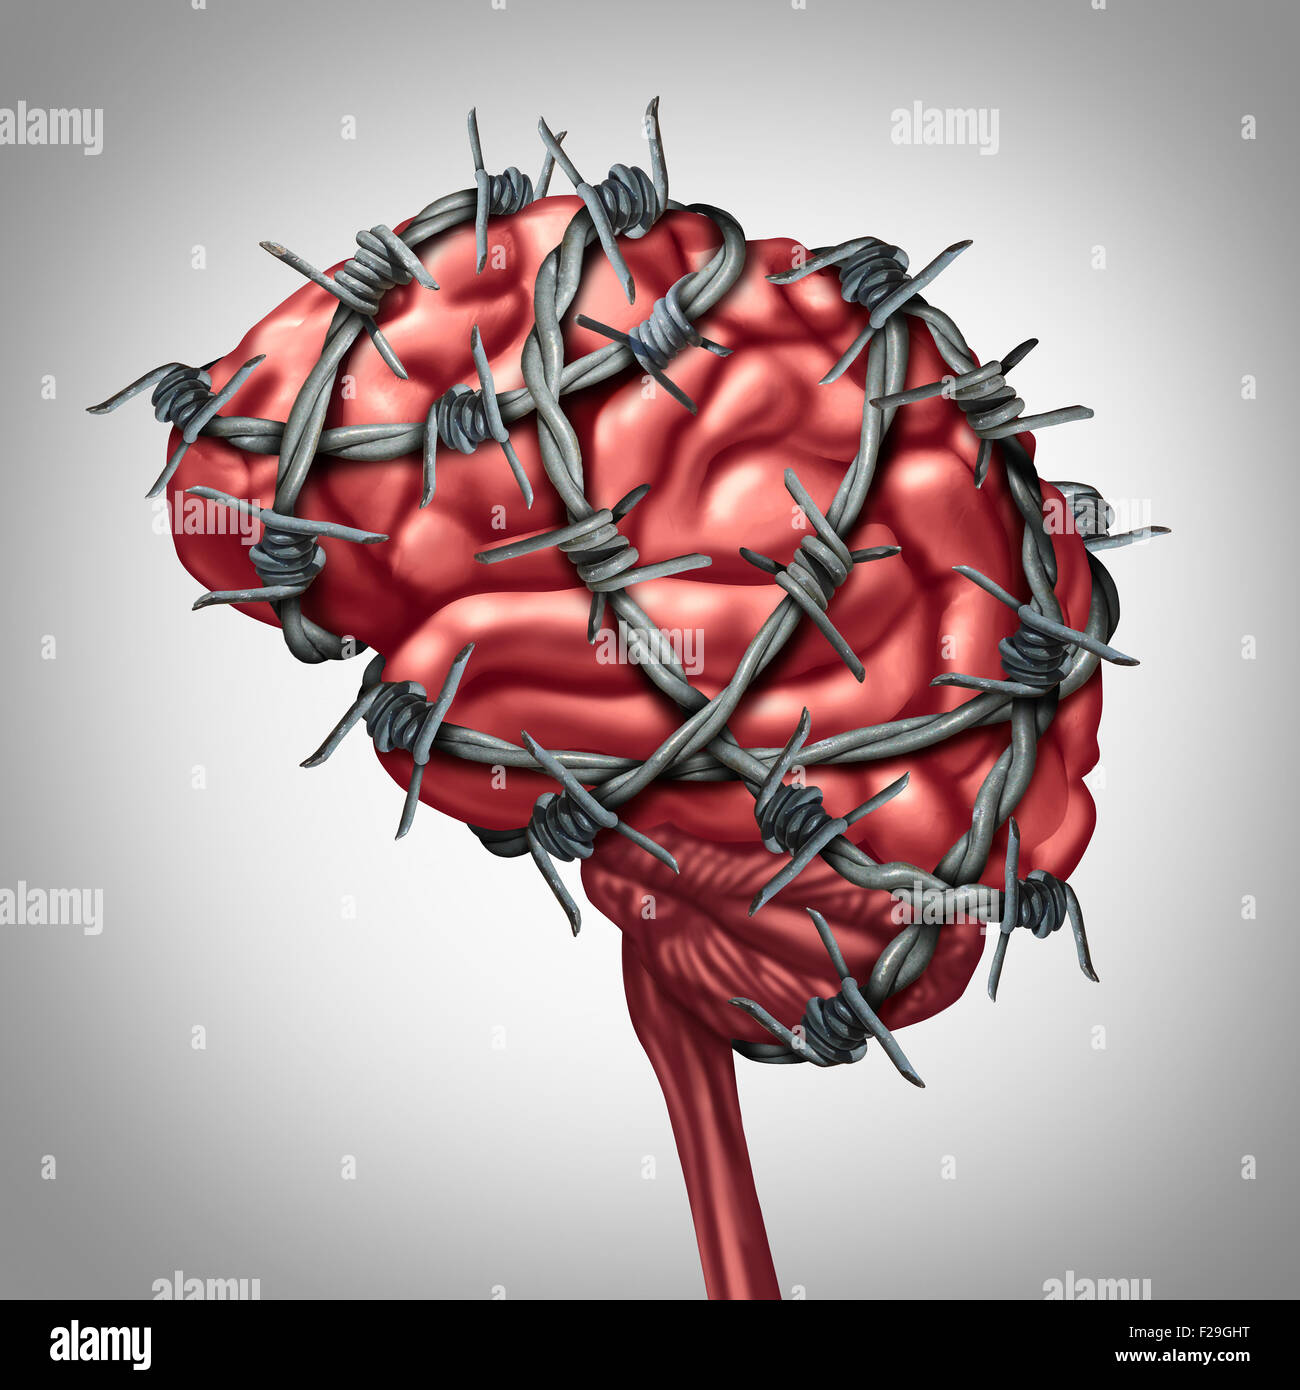 Brain pain medical health care concept as a human thinking organ with barbwire or sharp barb wire fence wrapped - Stock Image